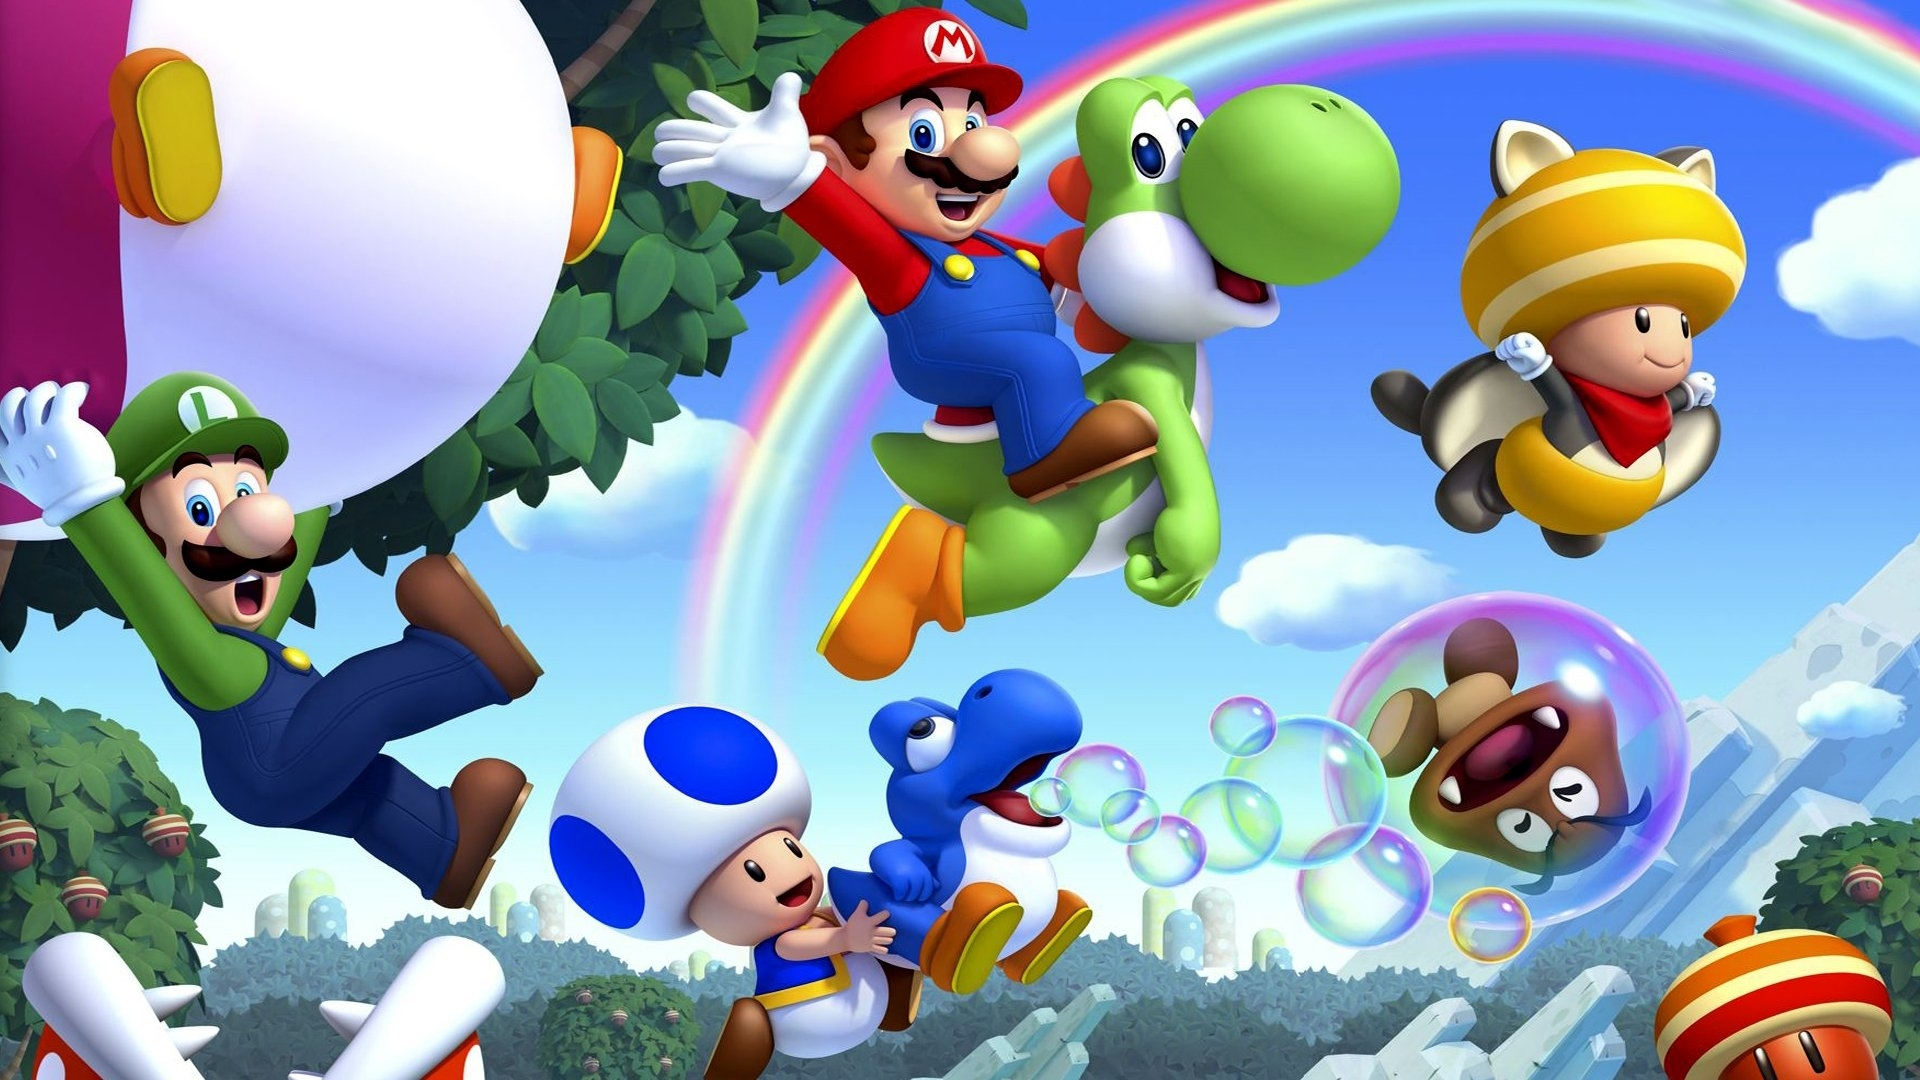 new super mario bros. u full hd fond d'écran and arrière-plan